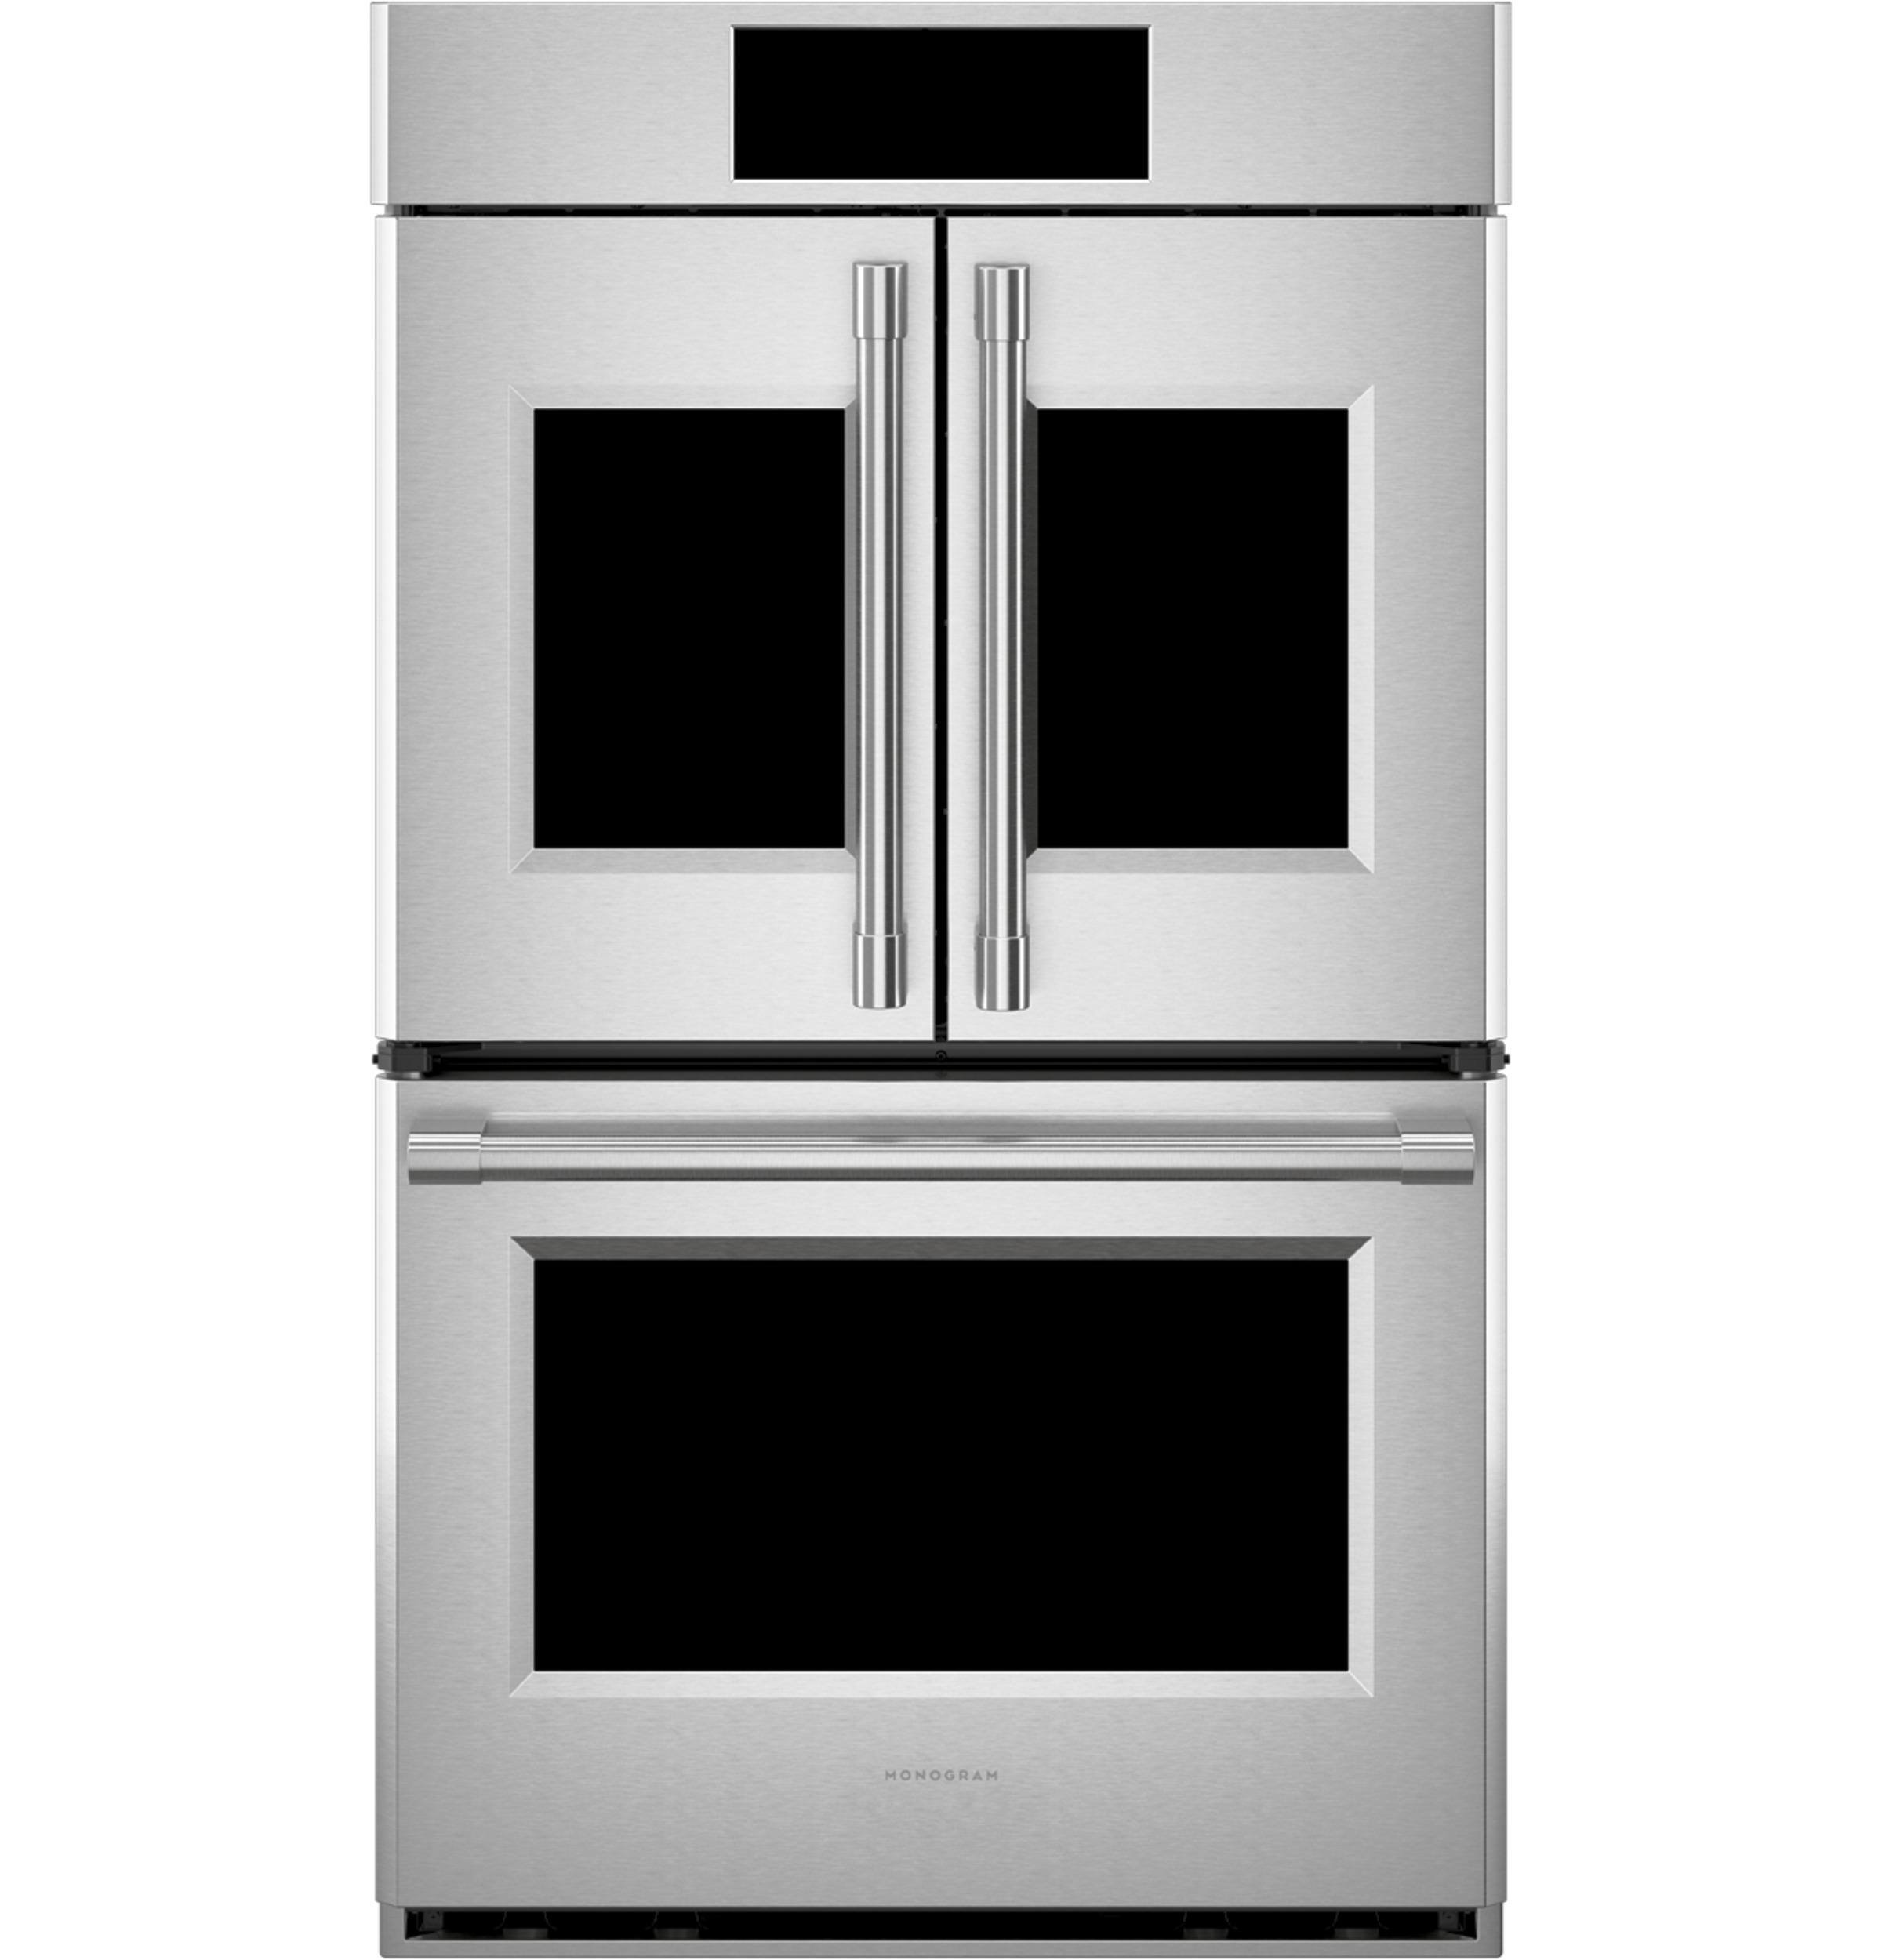 """Monogram Monogram 30"""" Smart French-Door Electric Convection Double Wall Oven Statement Collection"""